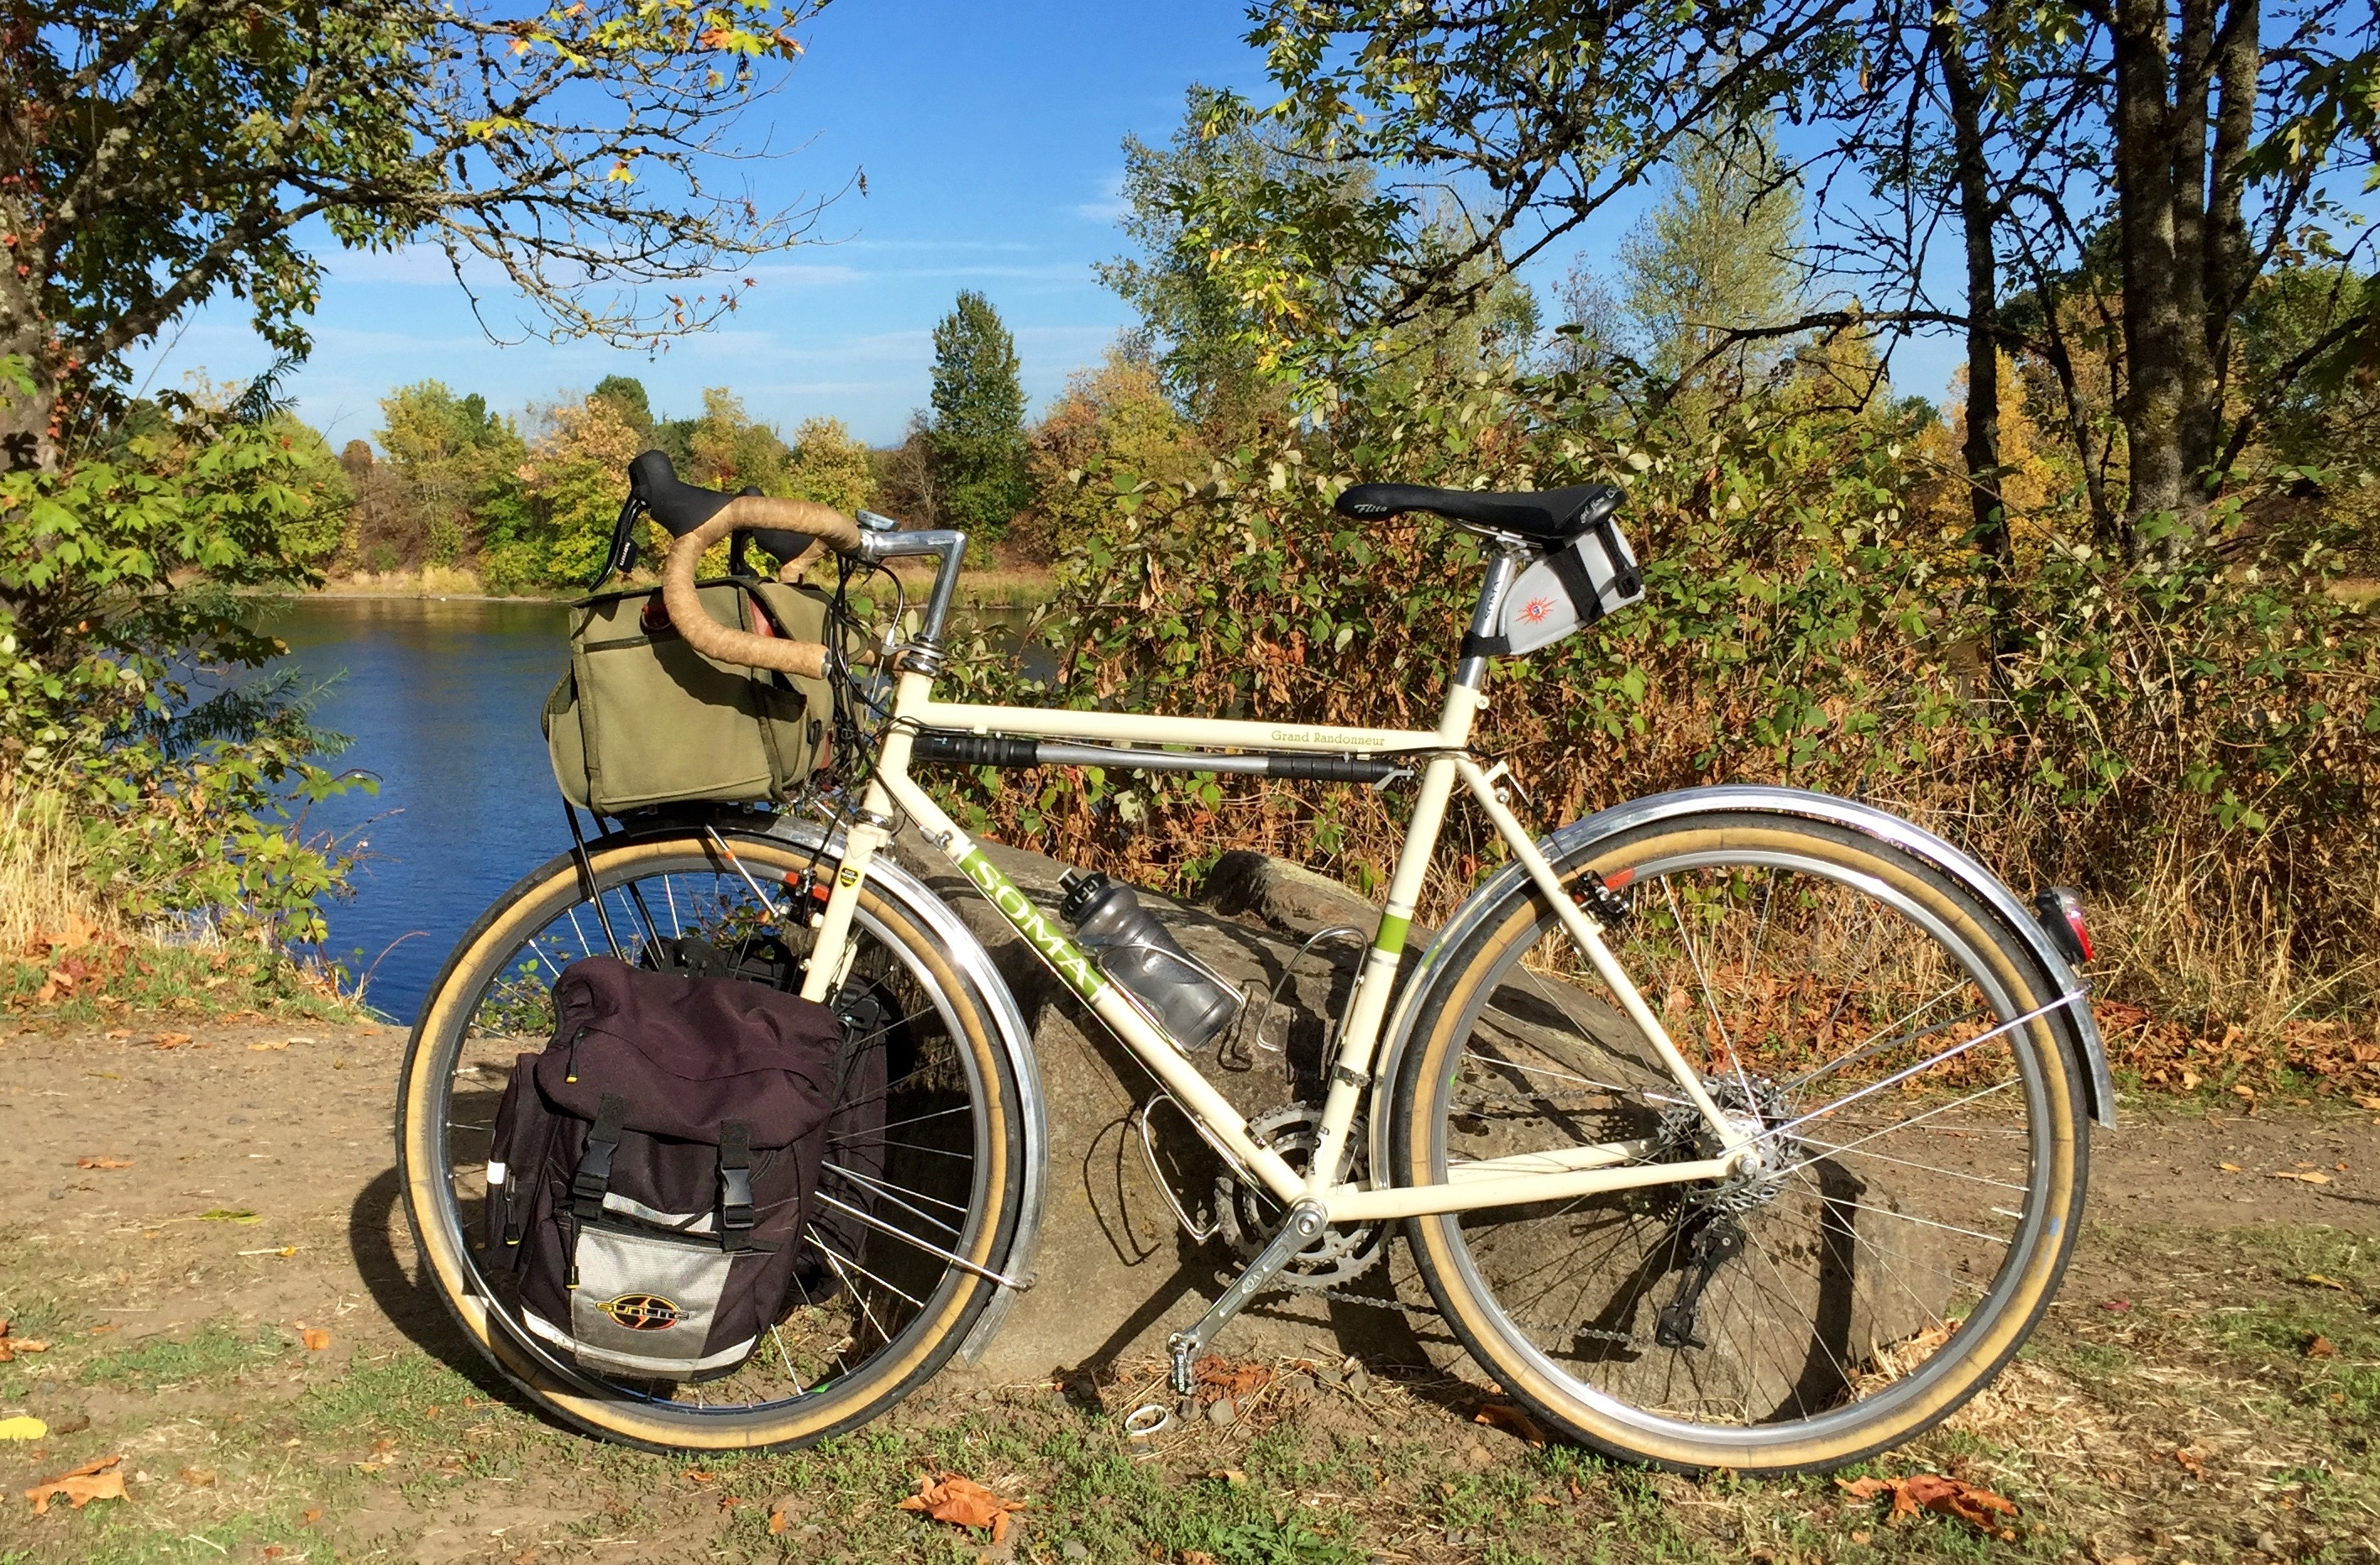 Panniers on the Grando